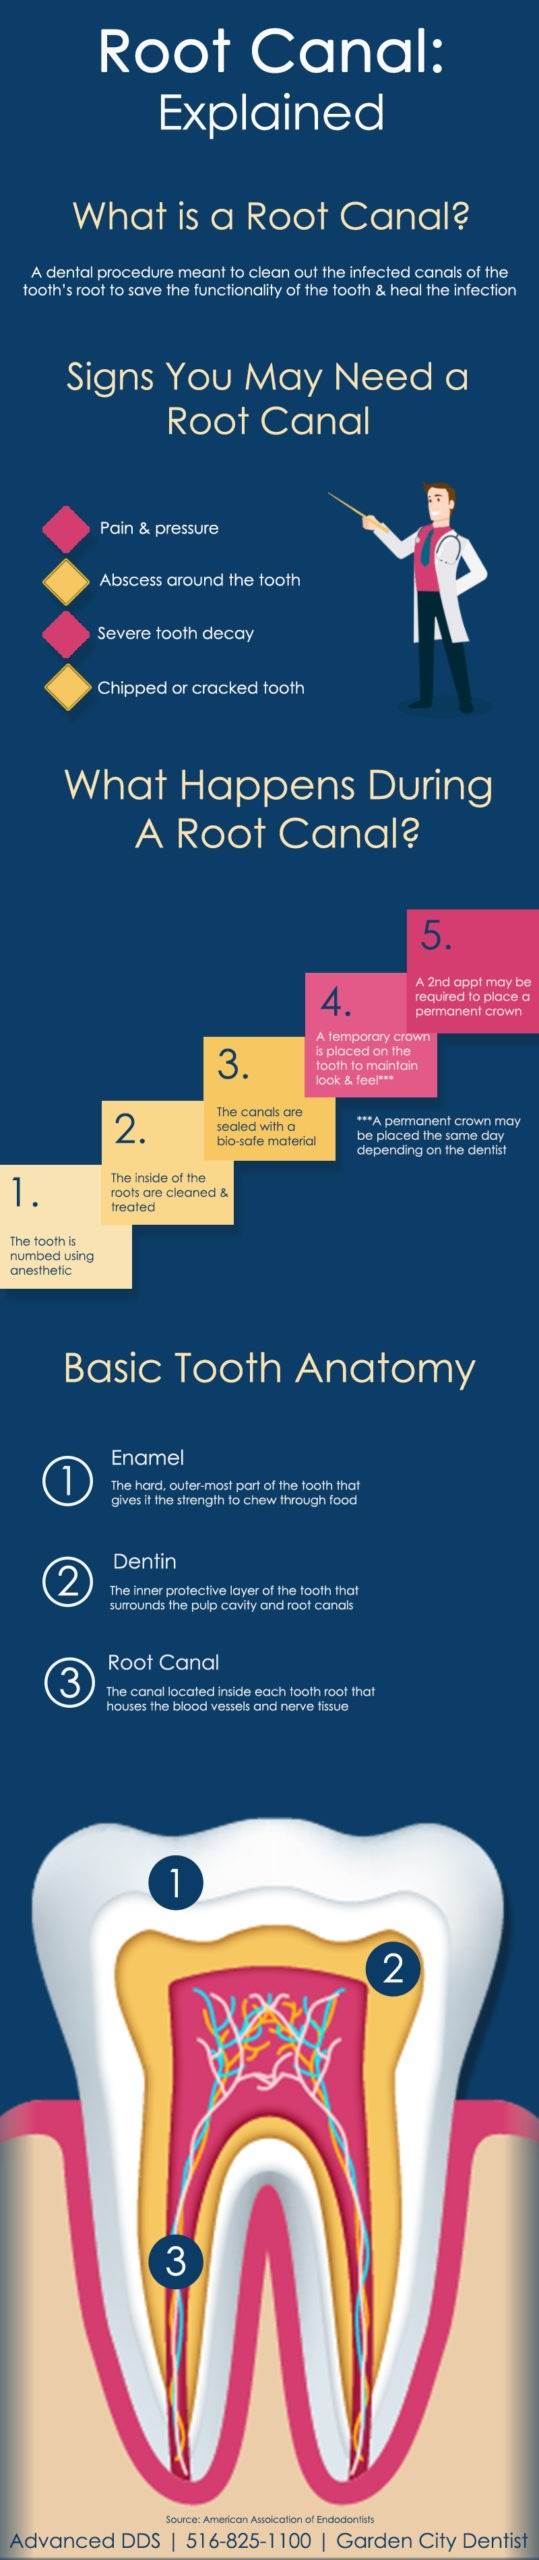 Infographic of root canal